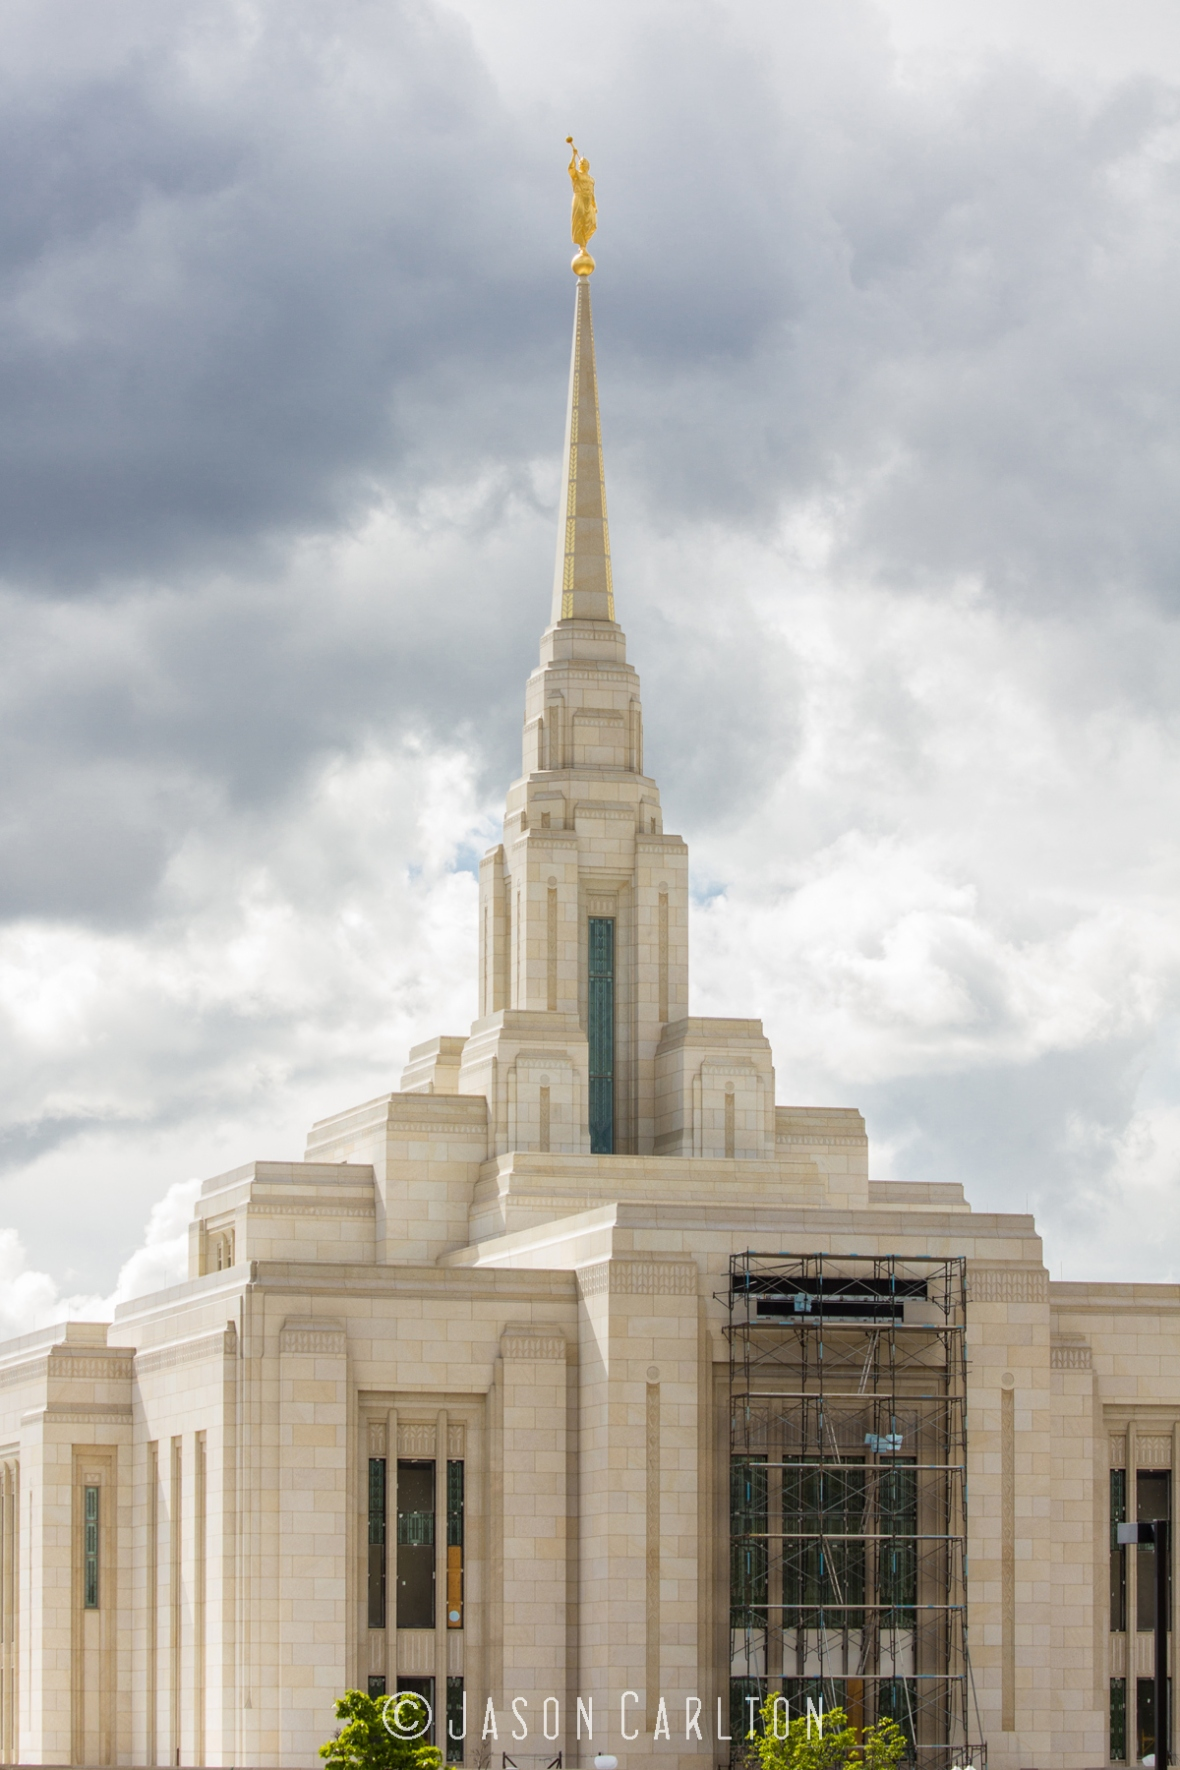 Photo of the Ogden Utah Temple under construction